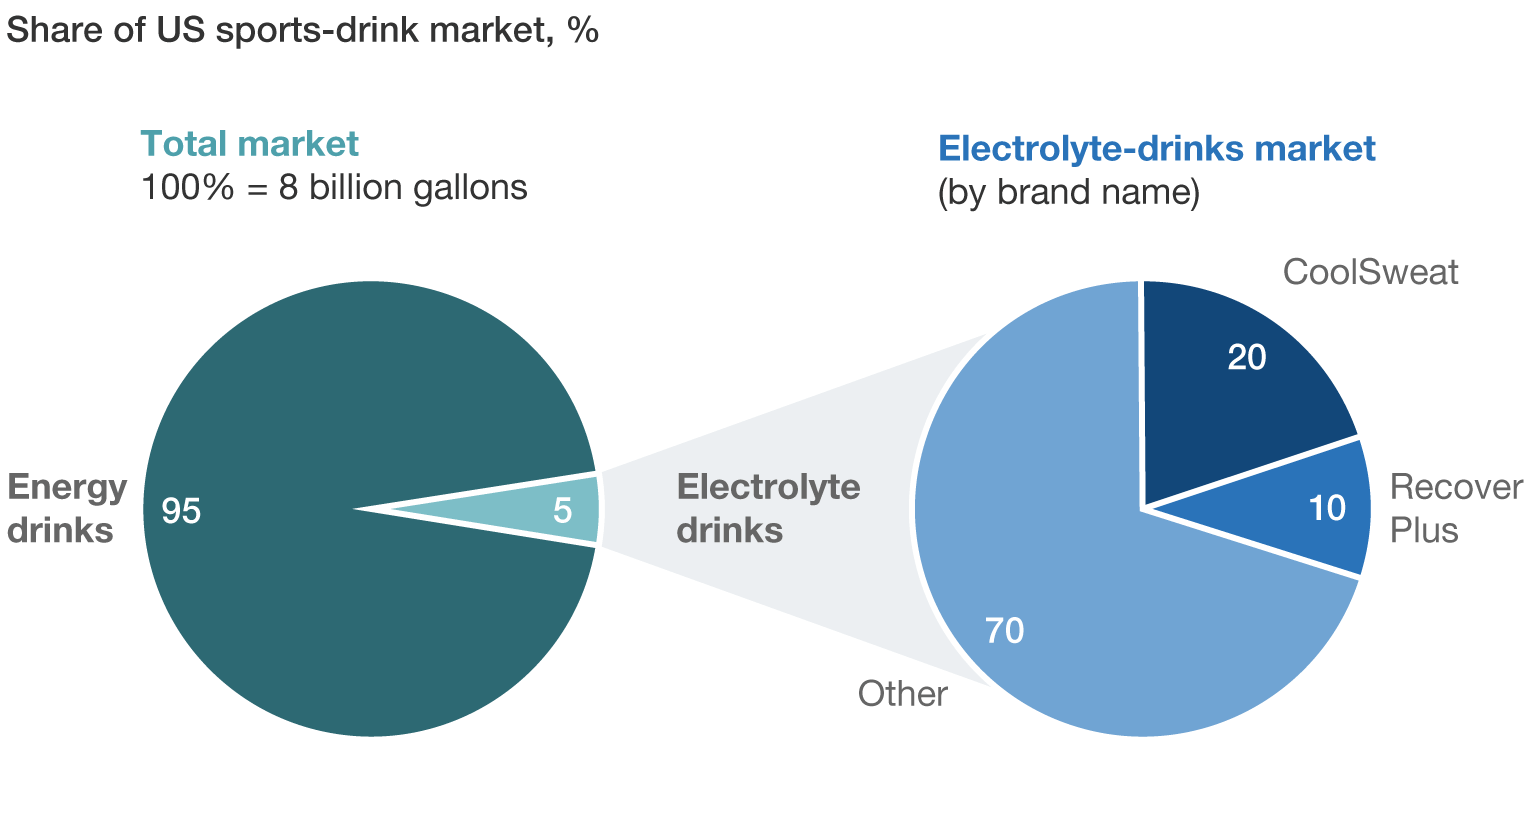 electro light careers mckinsey company exhibit 1 based on the target price and up front fixed costs what share of the electrolyte drink market would electro light need to capture in order to